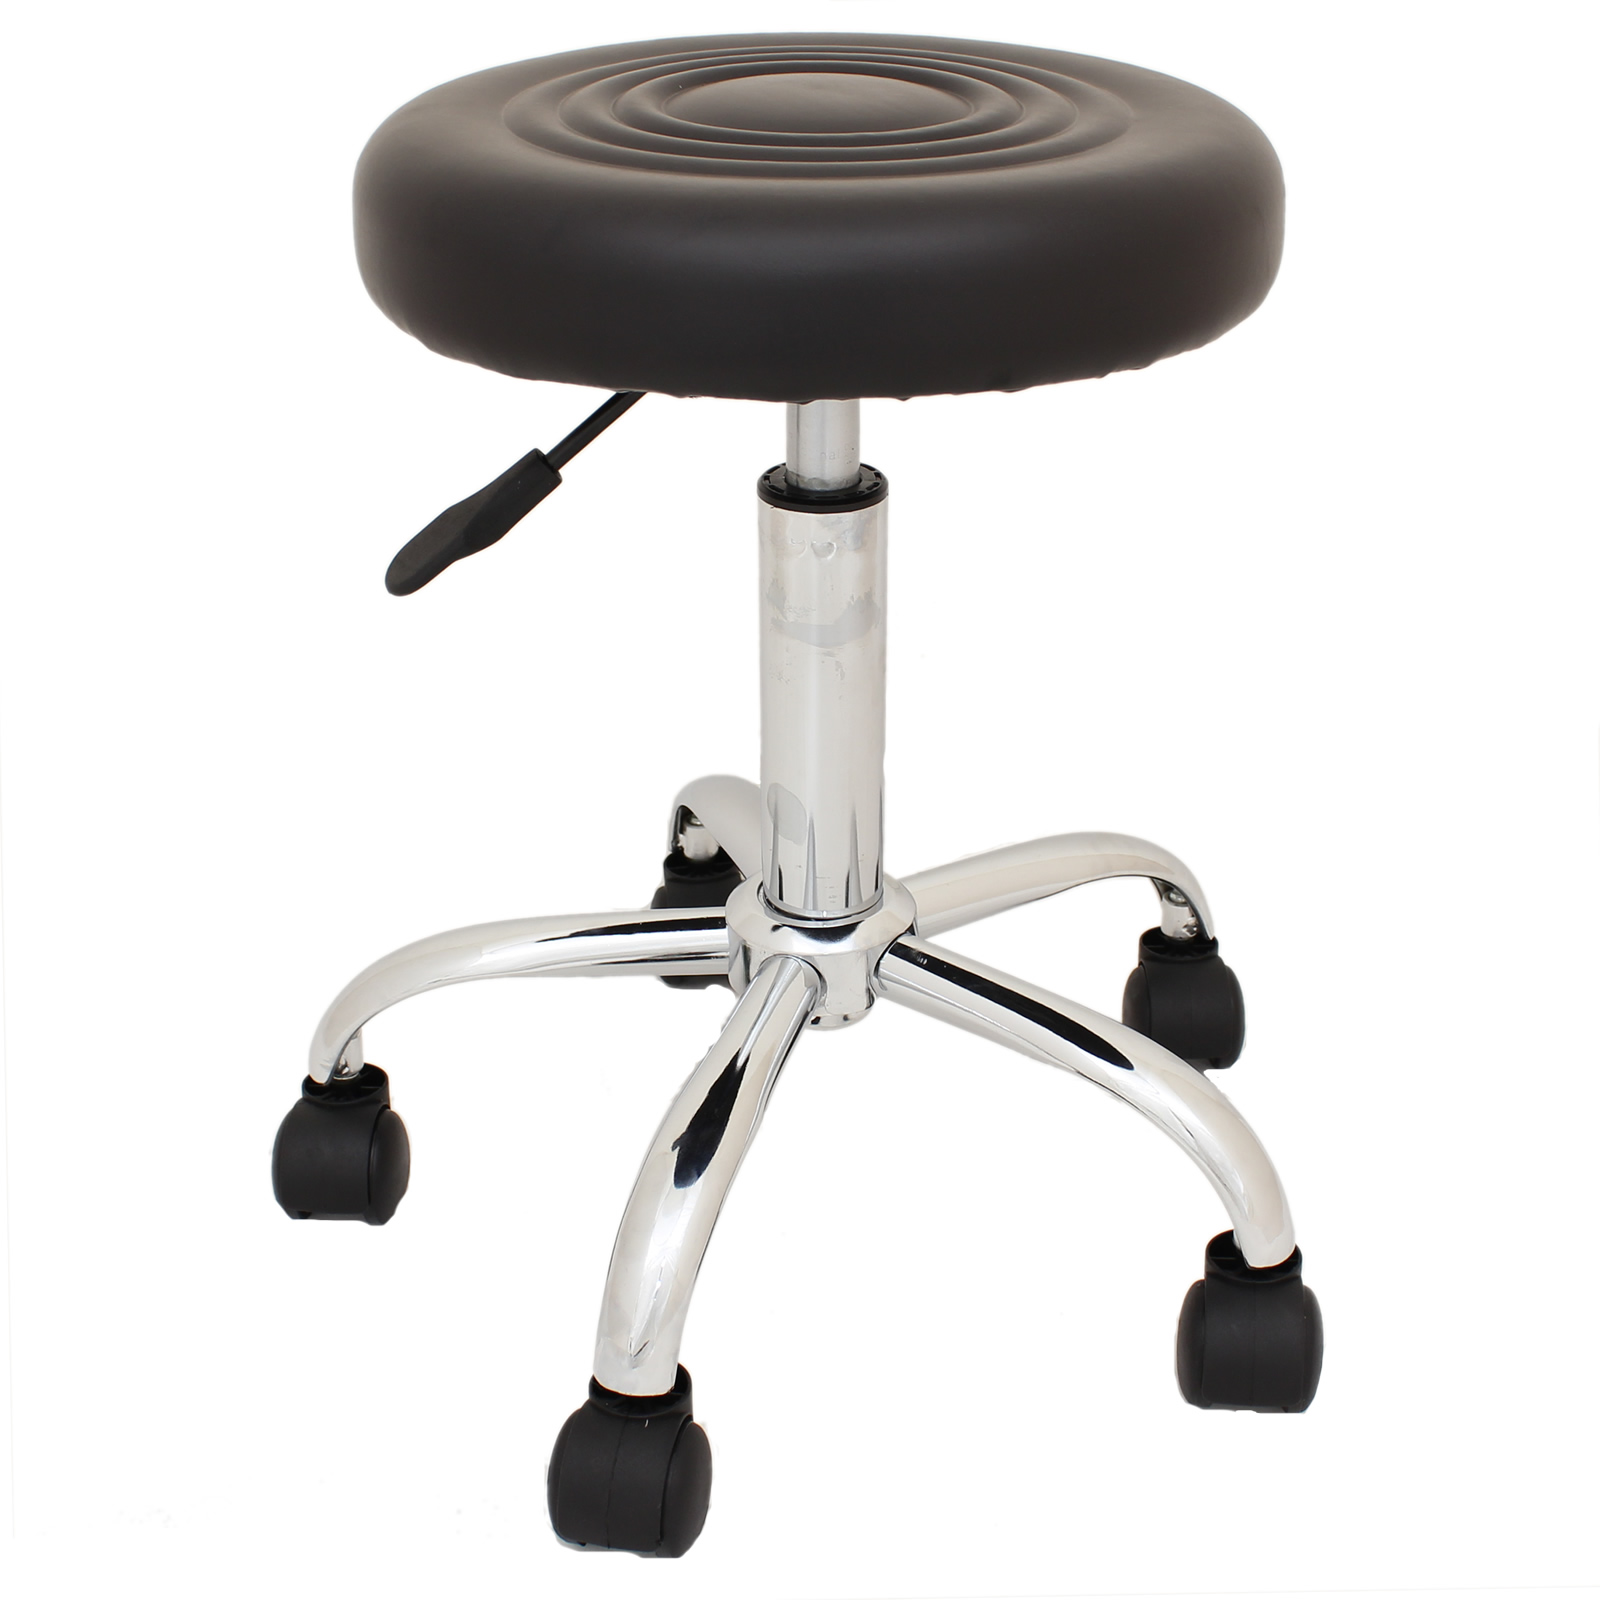 Musicians Chair Adjustable Swivel Chair Stool Drummer Throne Musicians